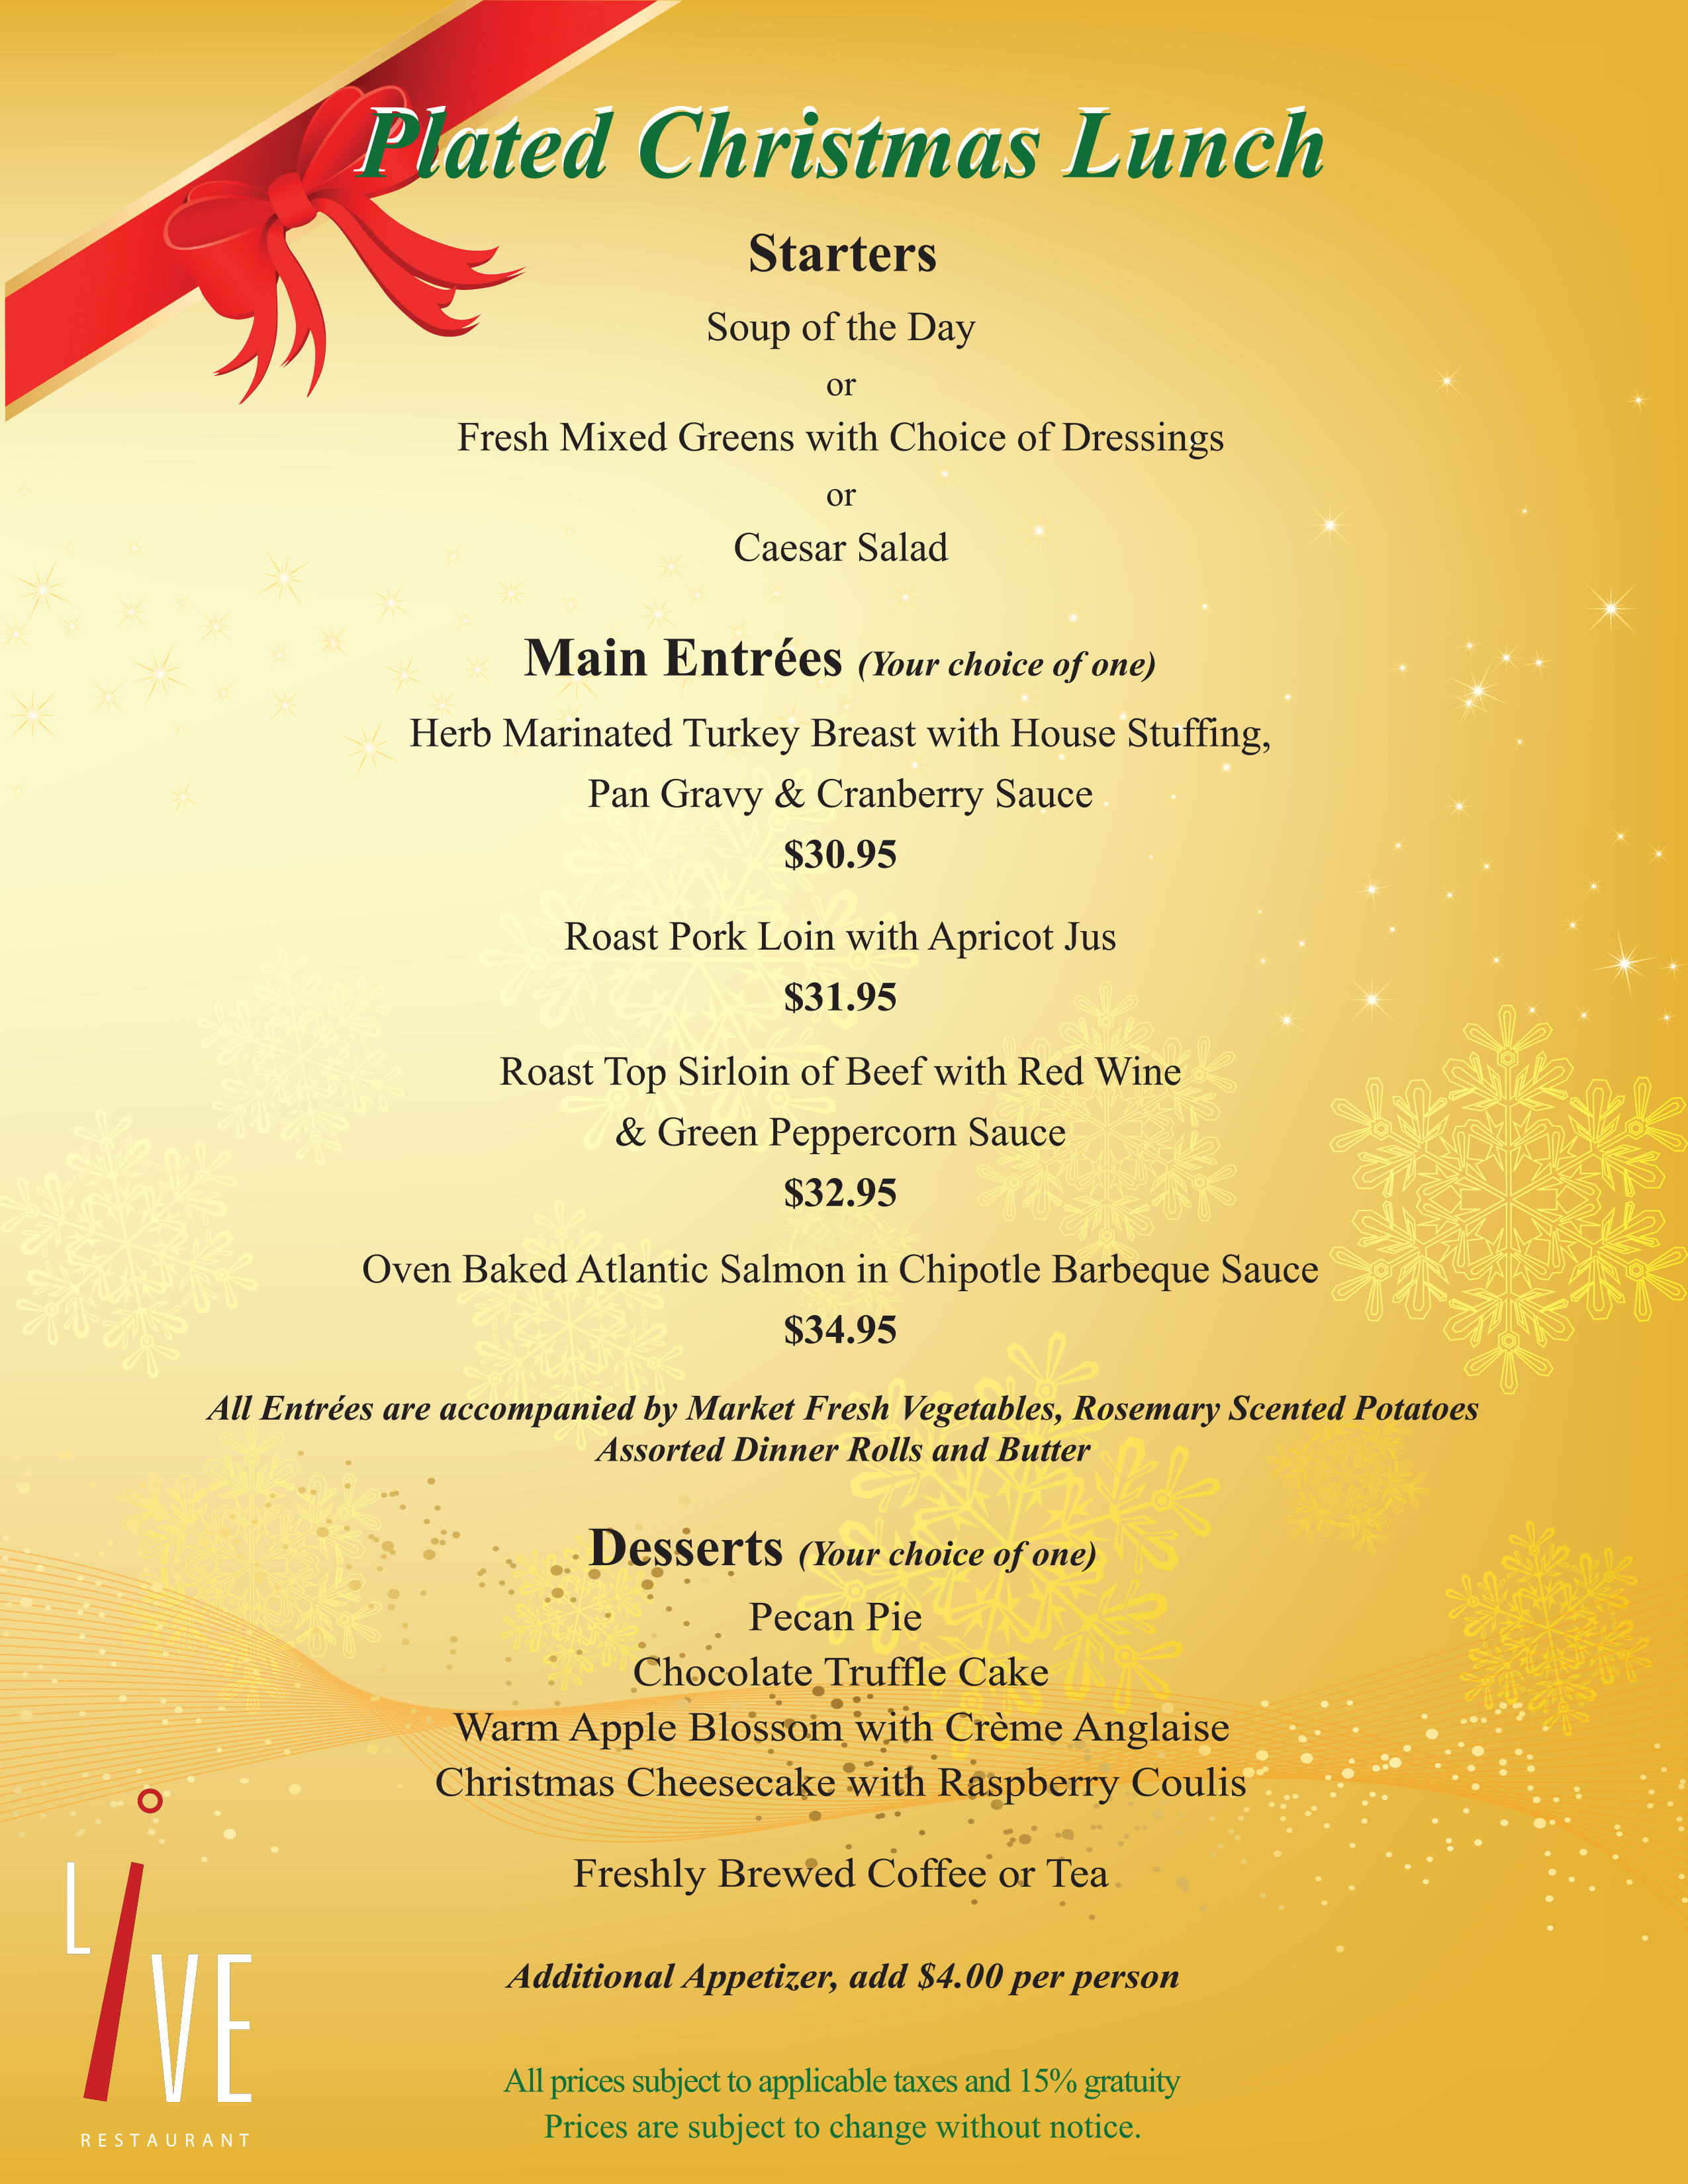 Download the plated christmas luncheon menu